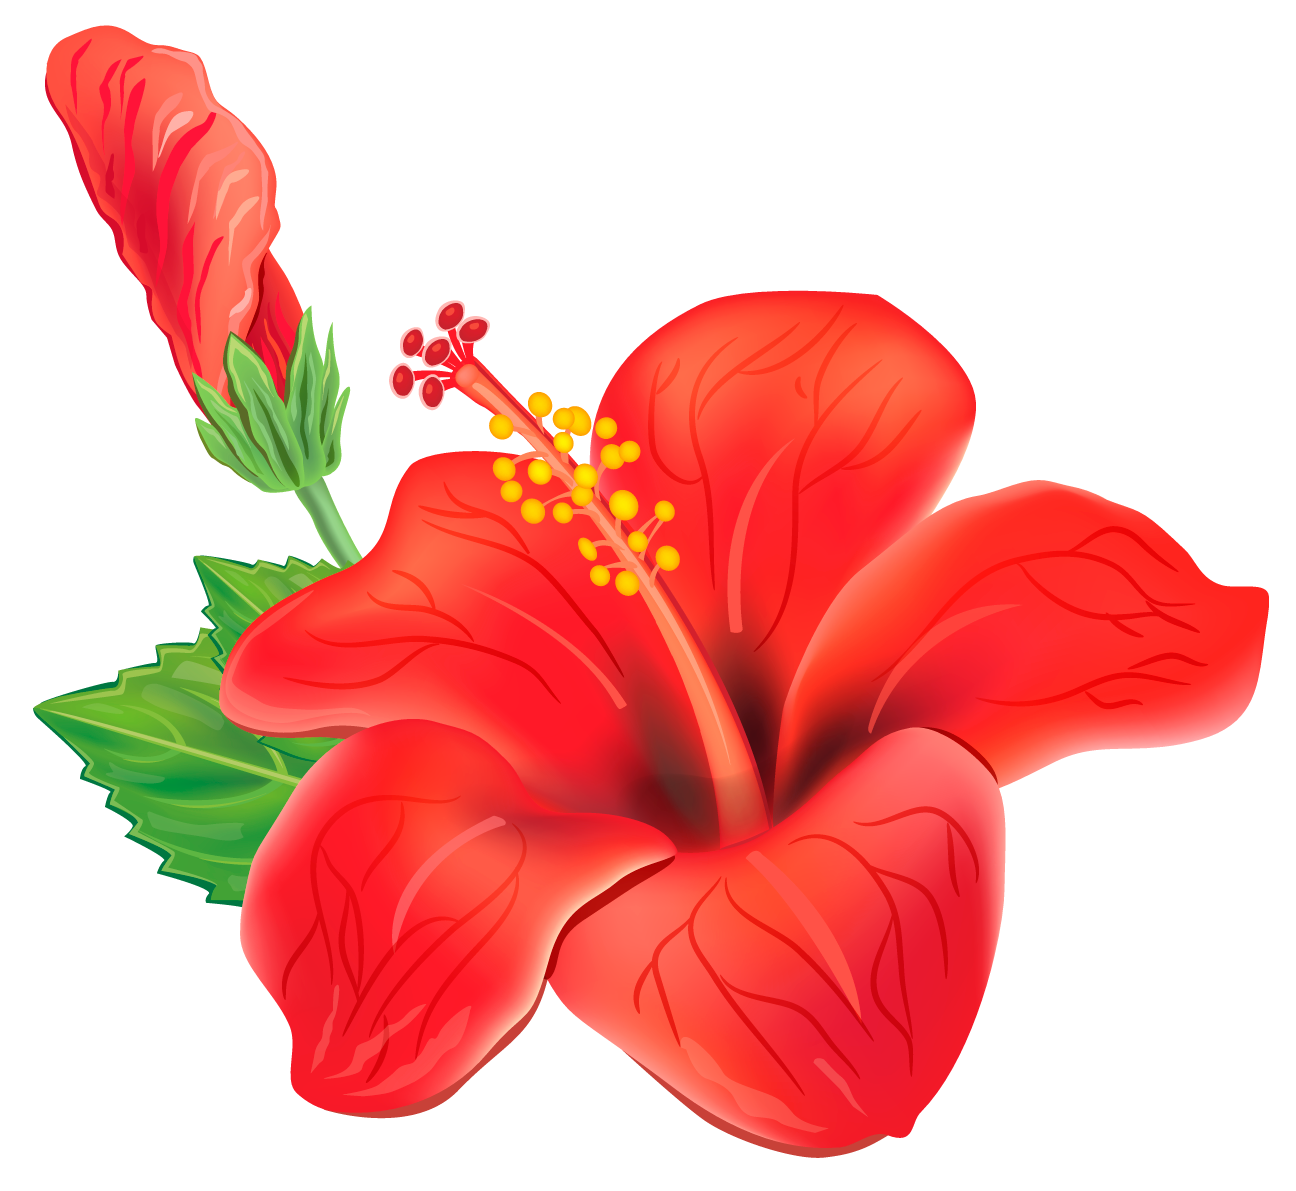 Flowers clipart tropical. Red exotic flower png